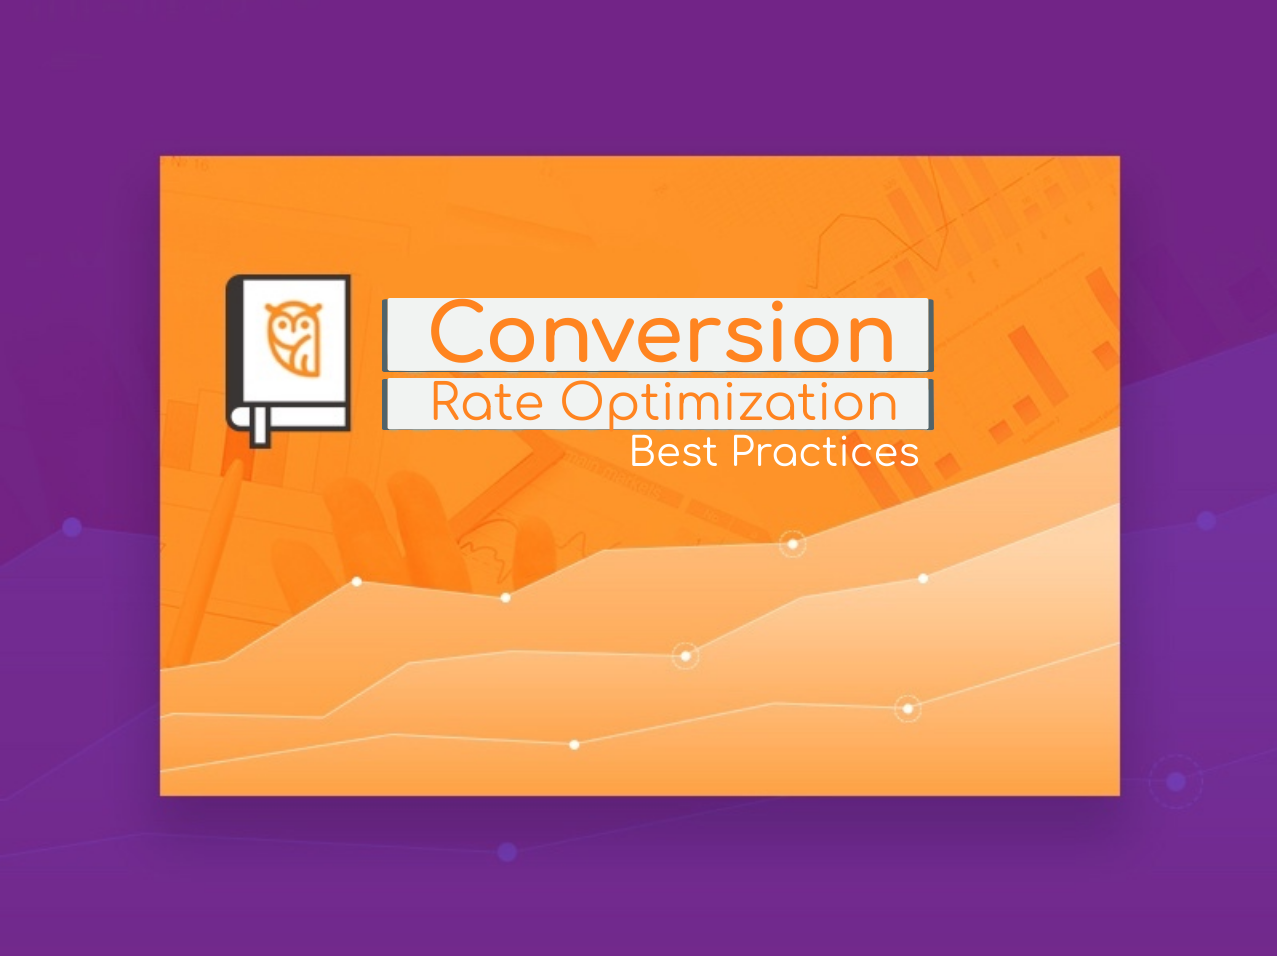 conversionr ate optimization best practices